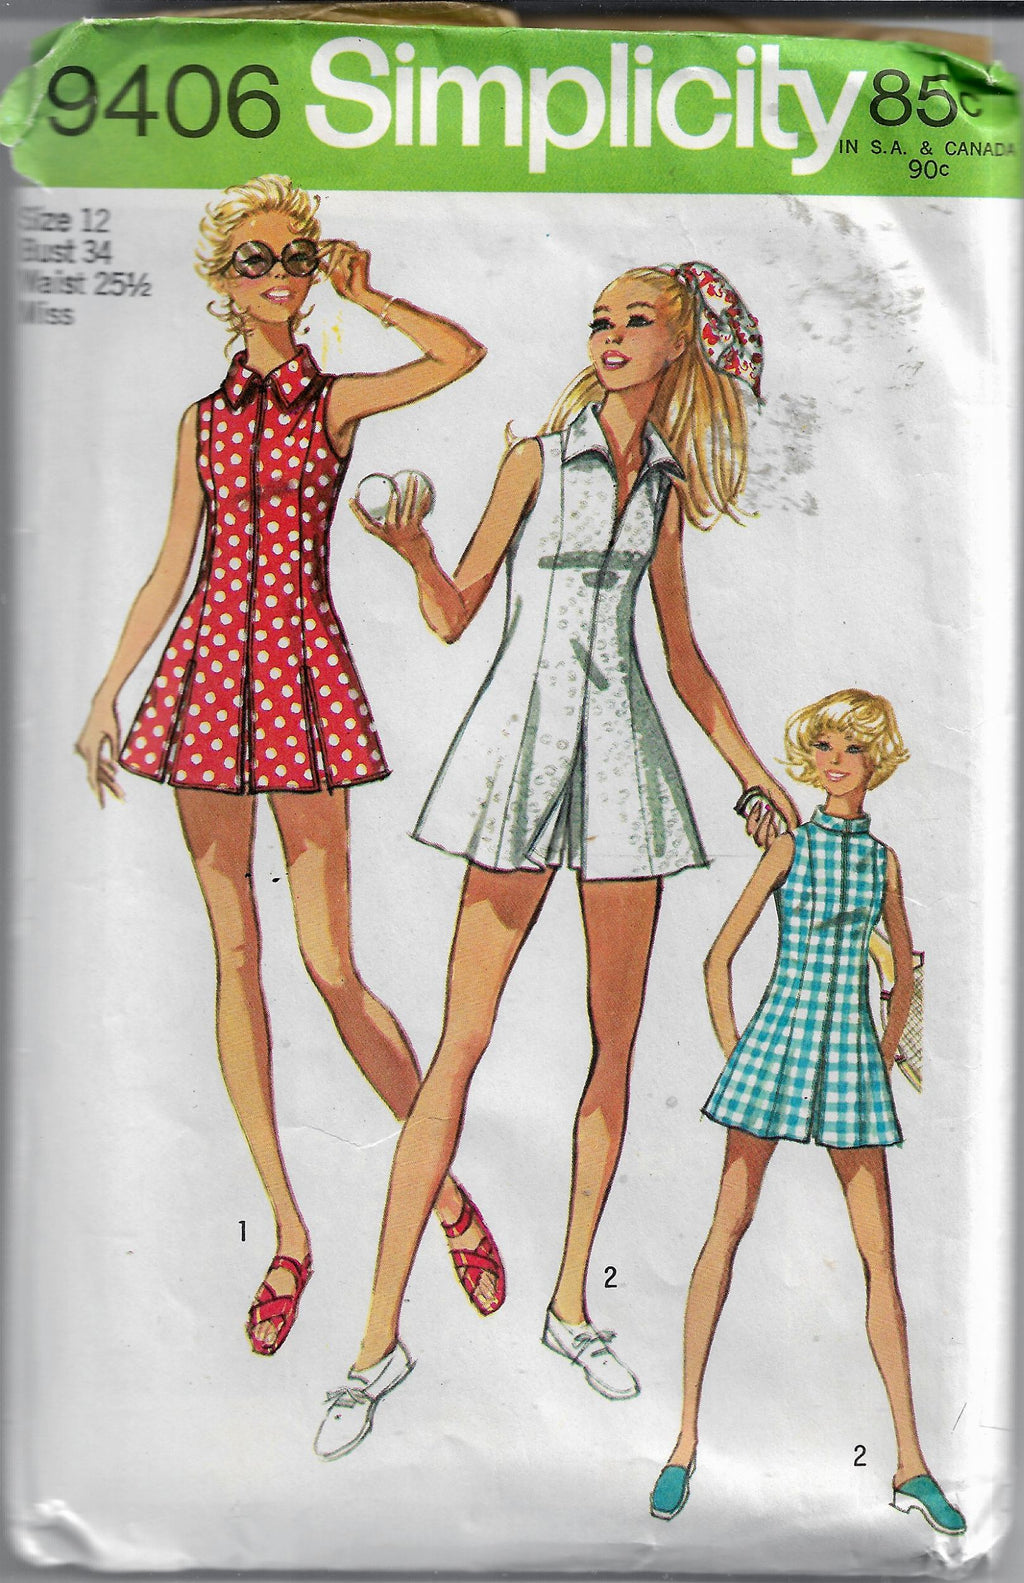 Simplicity 9406 vintage pattern tennis dress